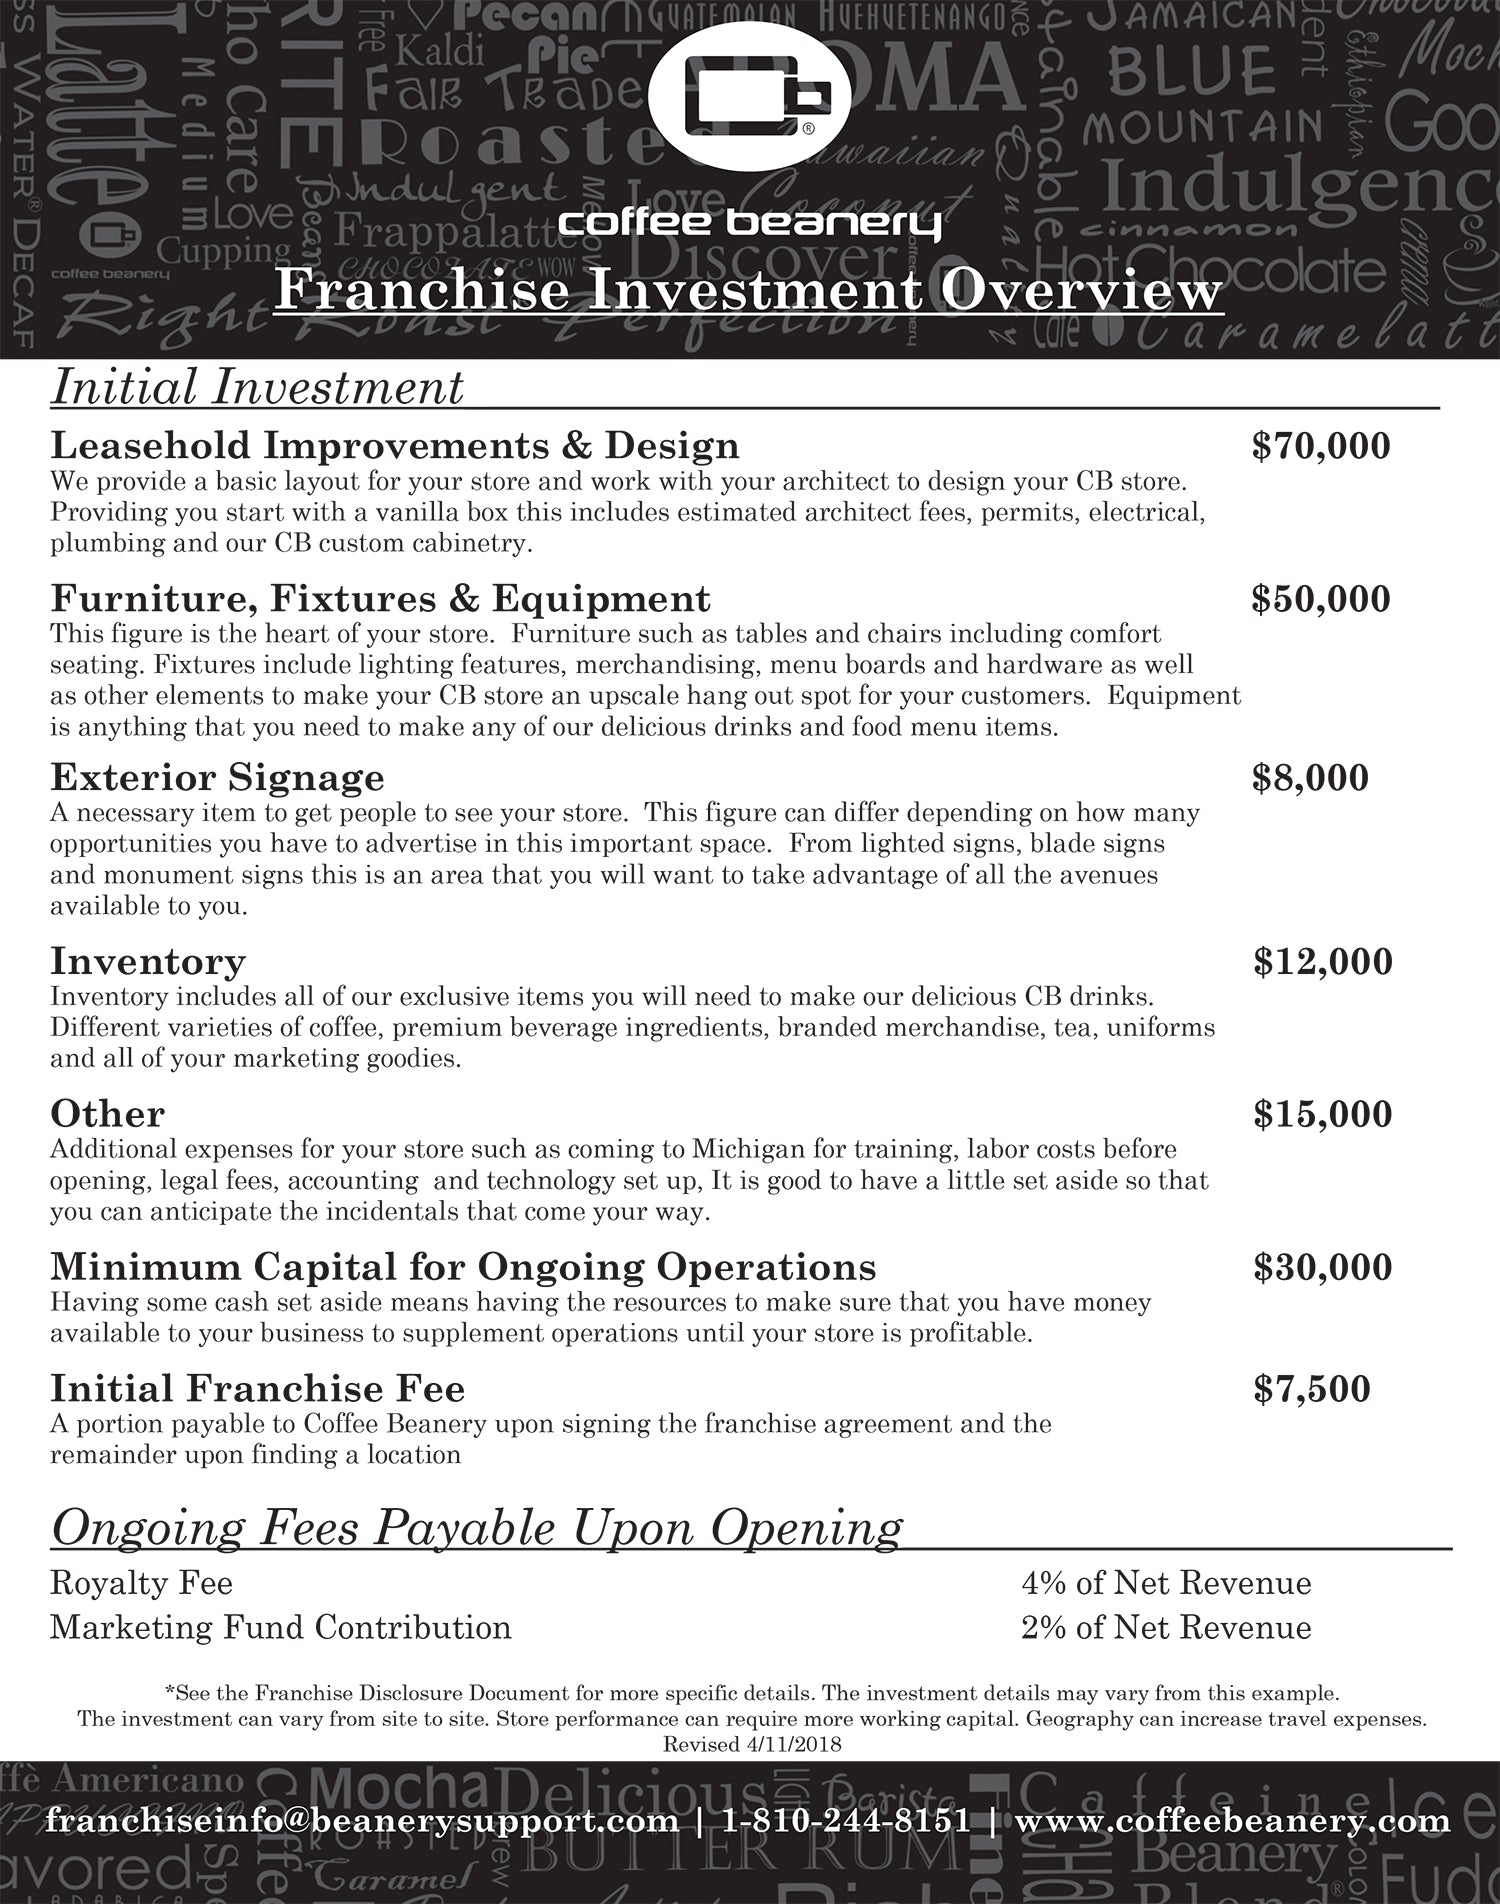 Franchise Investment Overview